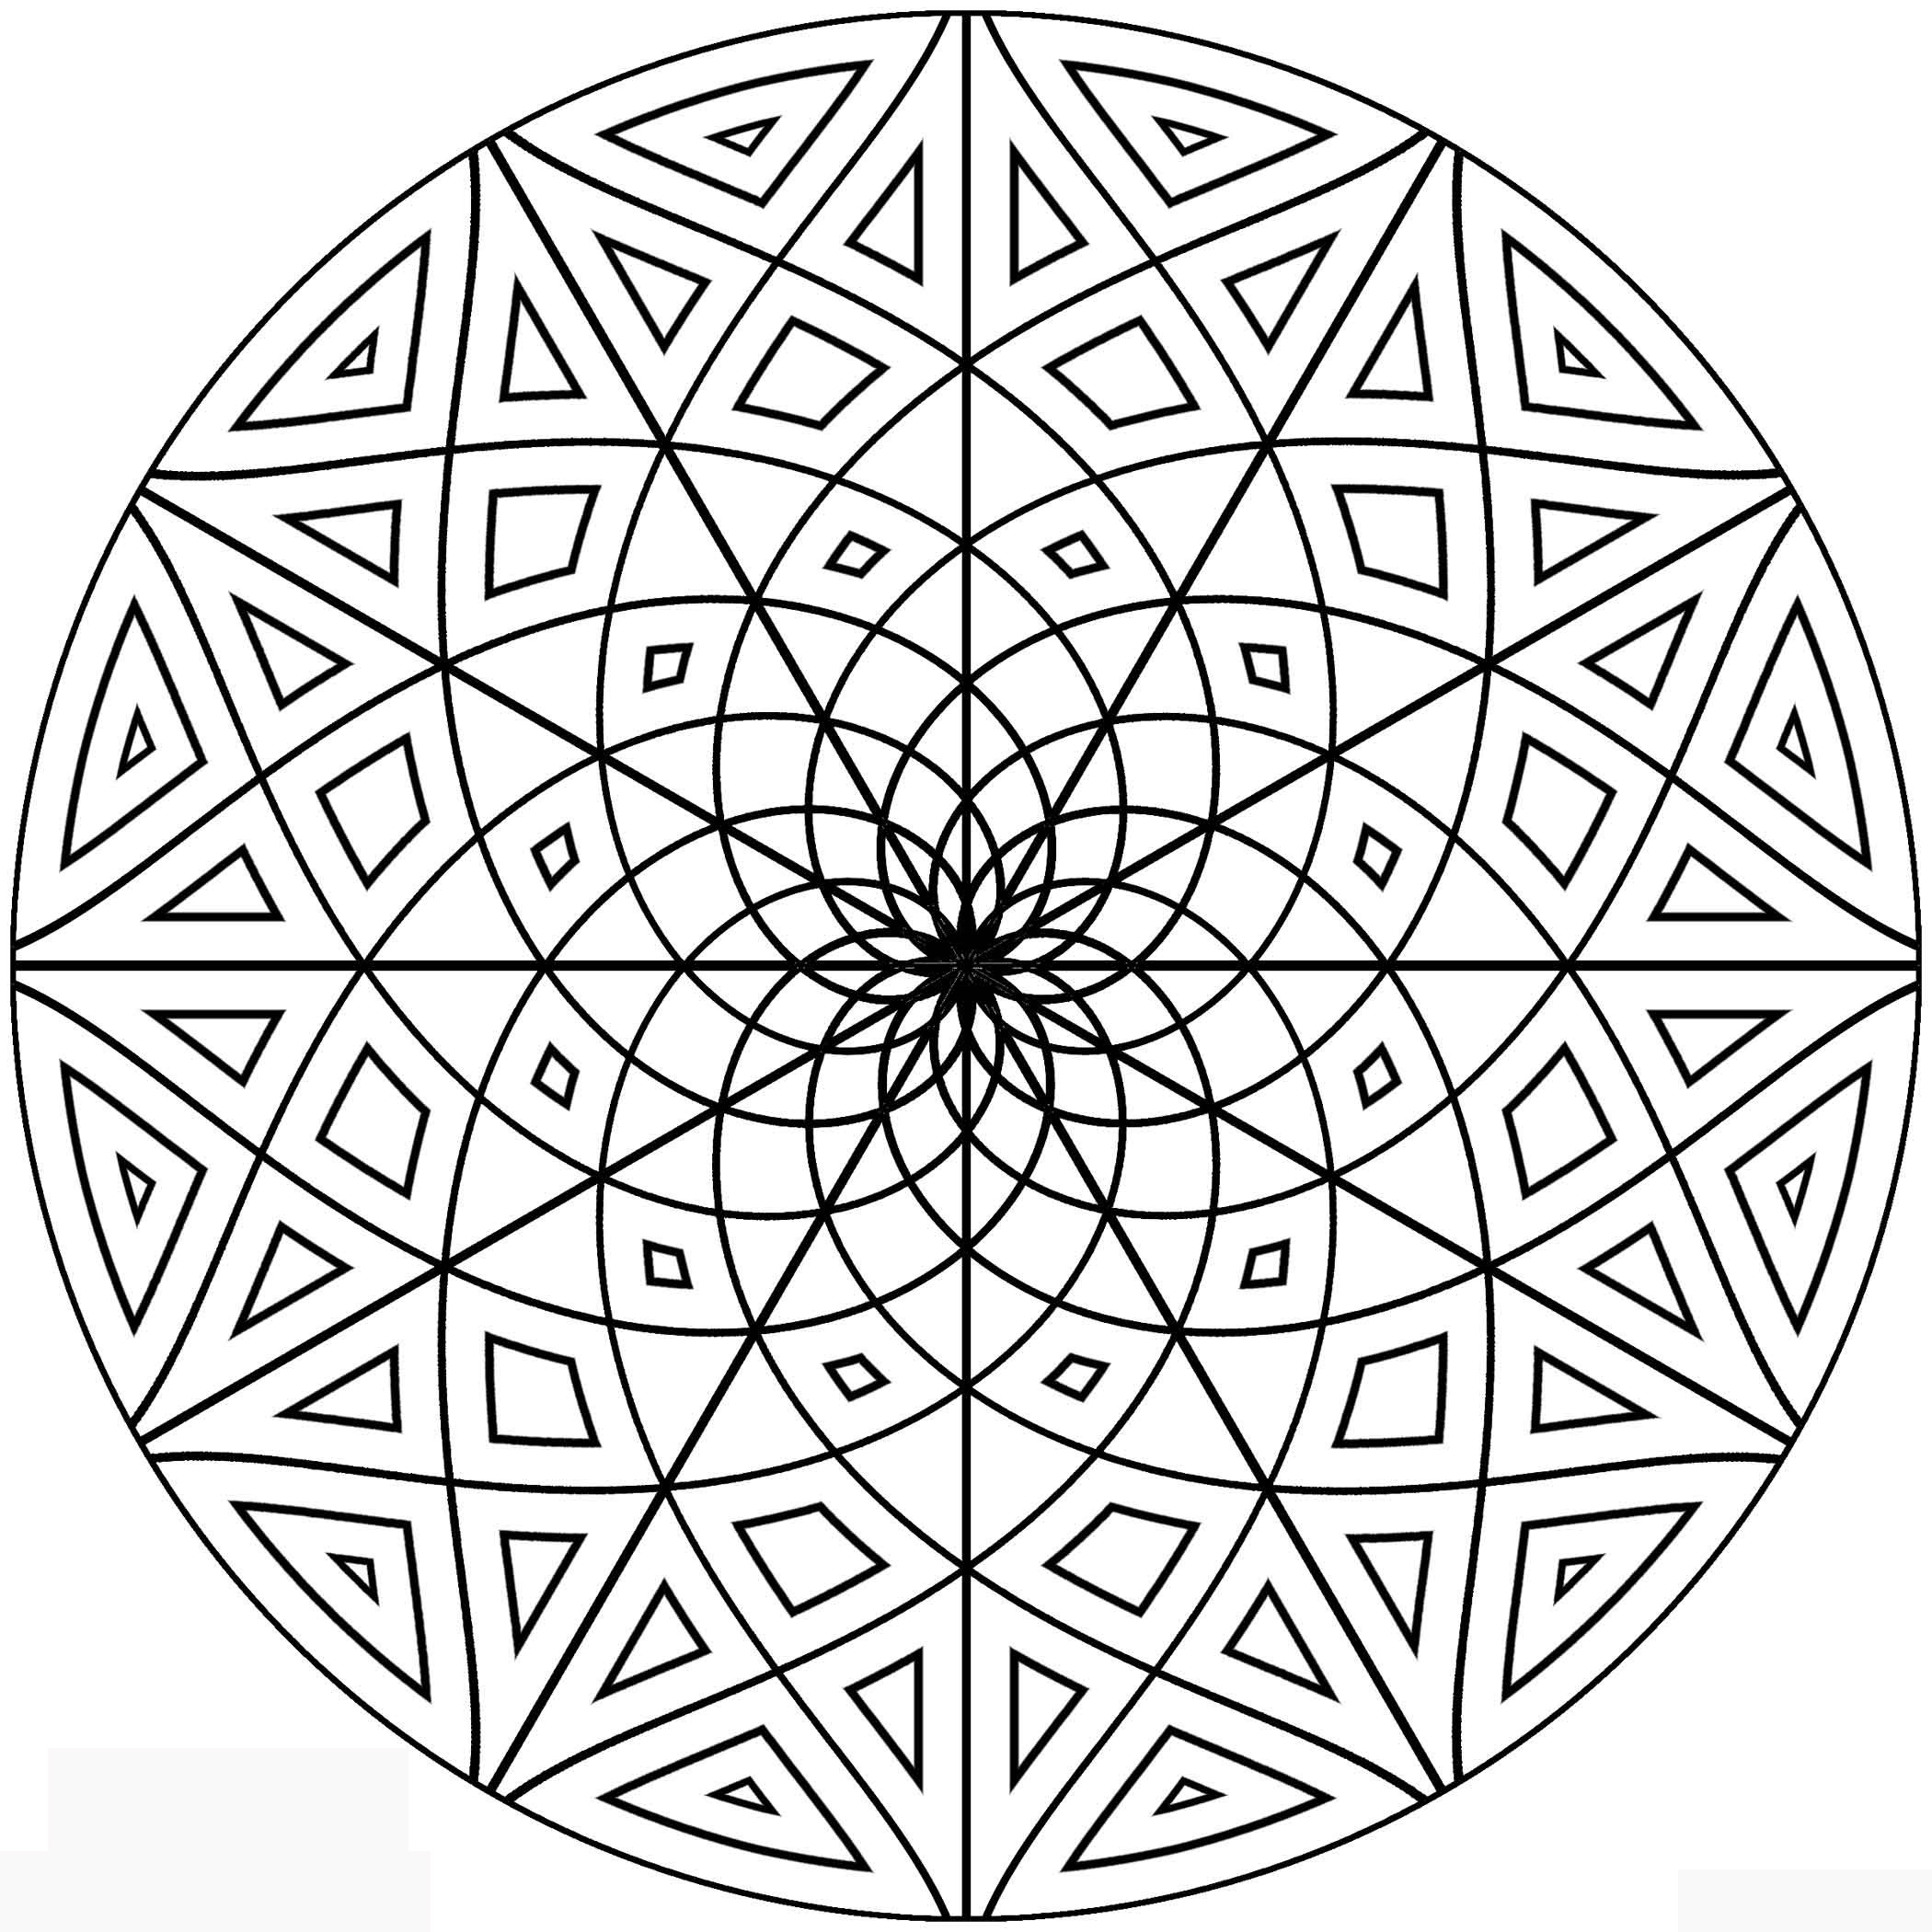 Best ideas about Coloring Pages For Adults Patterns . Save or Pin Free Printable Geometric Coloring Pages for Adults Now.